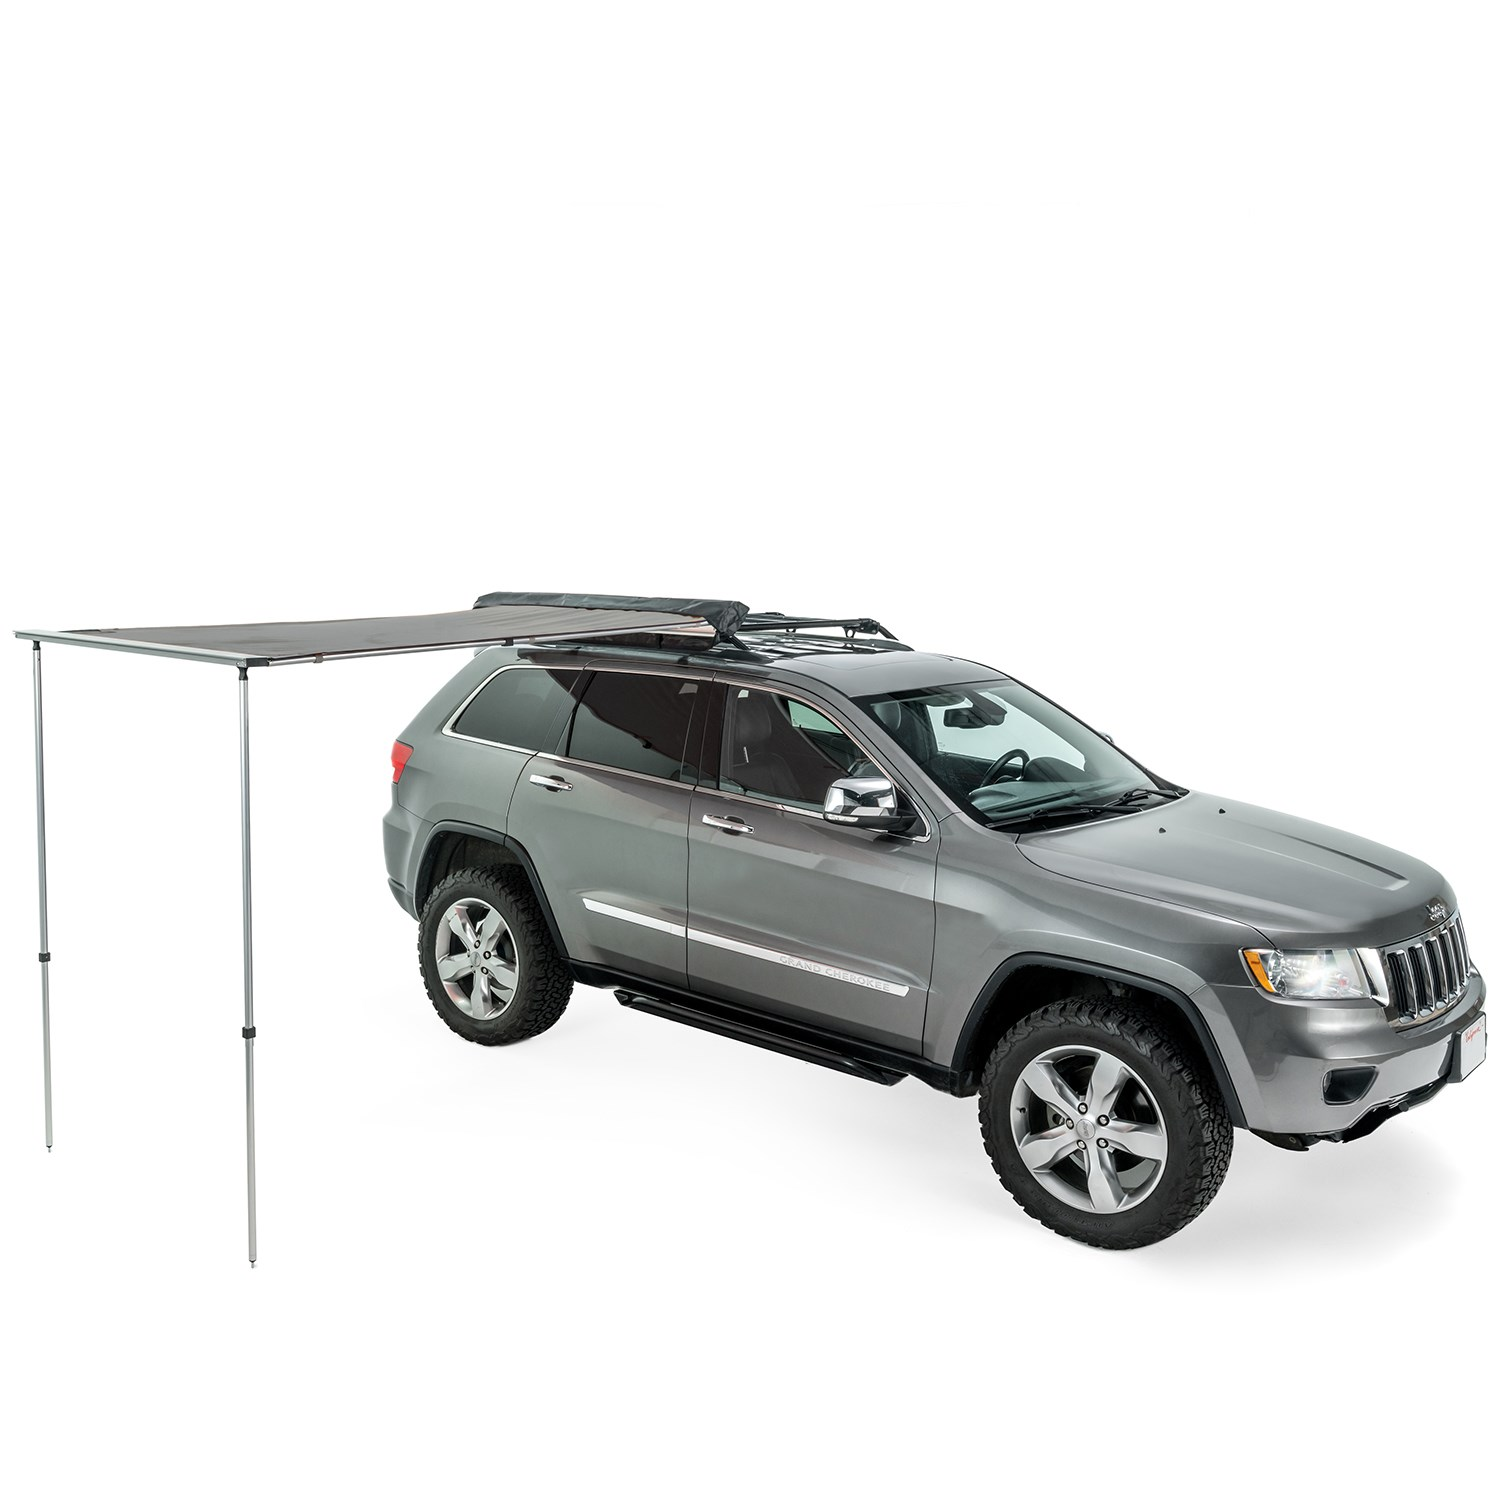 thule overcast 4 5 awning